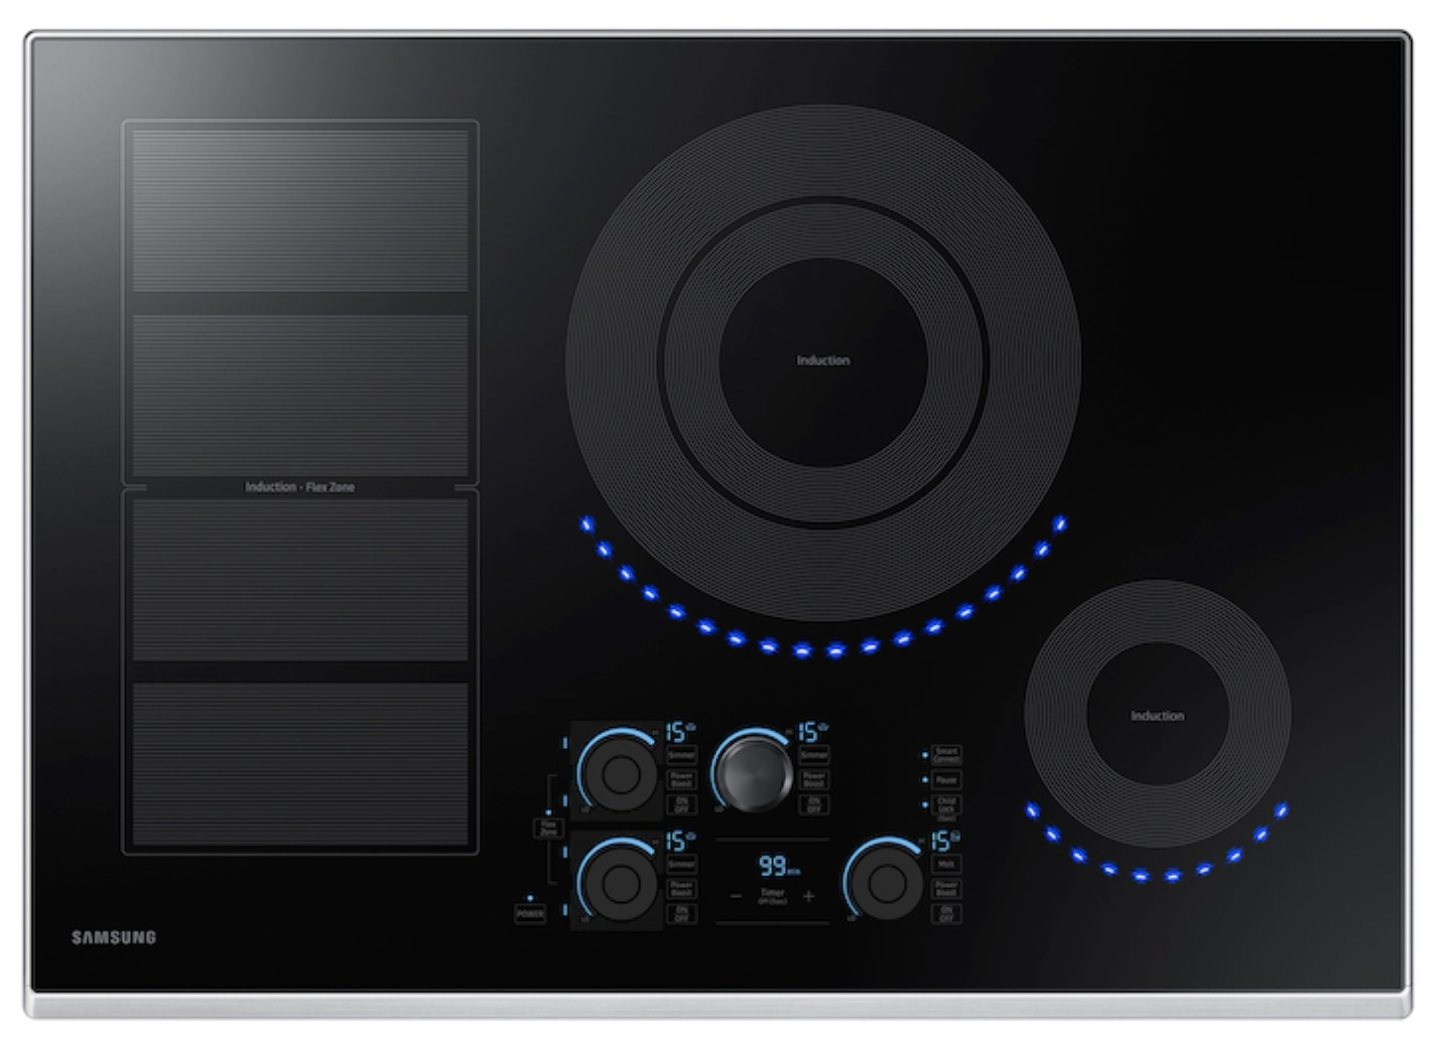 30 Inch Induction Cooktop In Stainless Steel Nz30k7880us Samsung Us Induction Cooktop Cooktop Induction